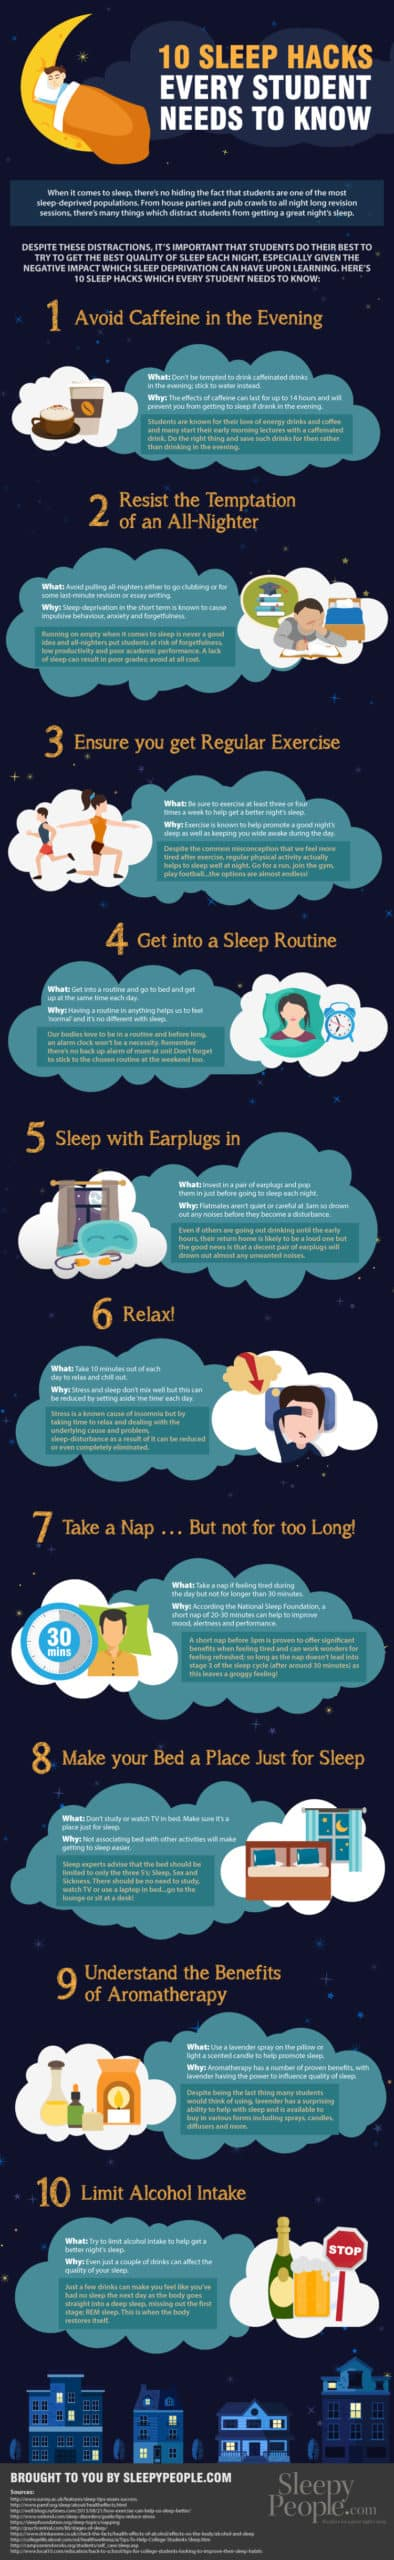 10 Sleep Hacks Every Student Needs To Know Infographic